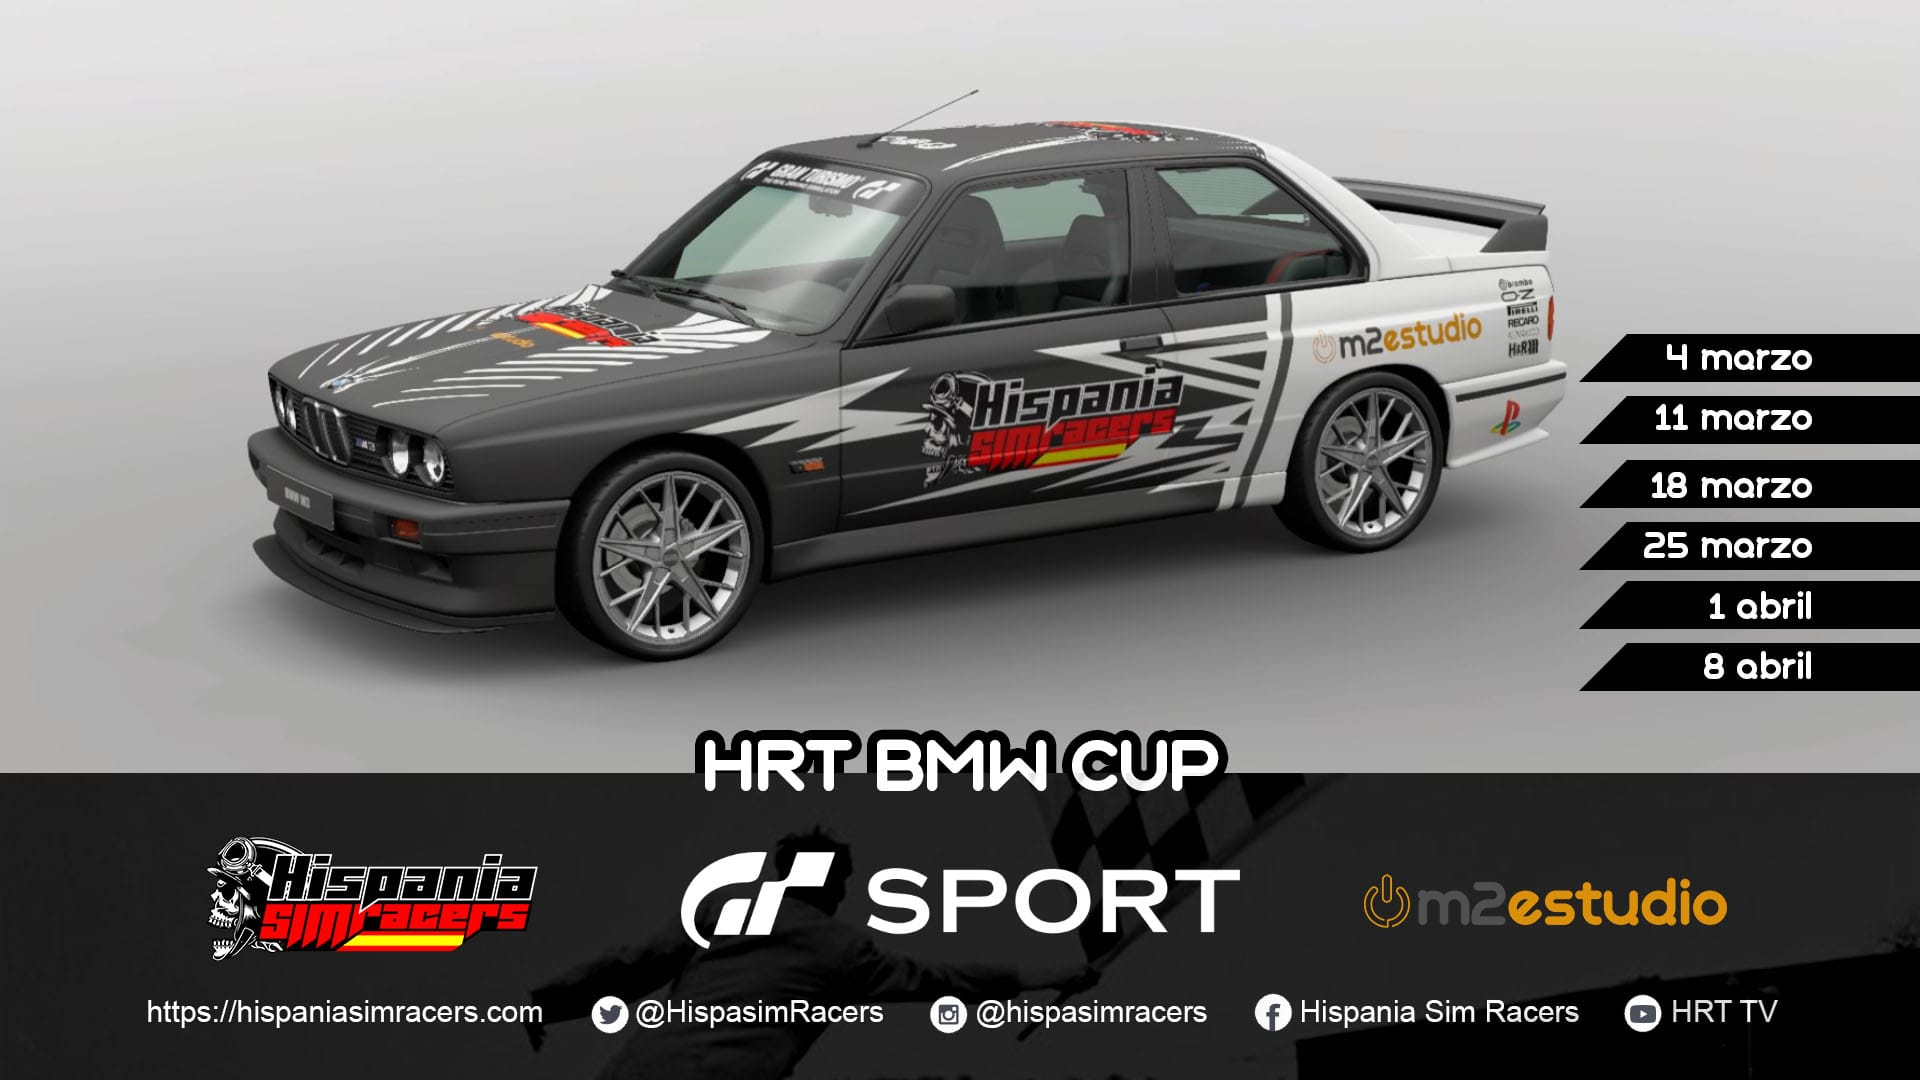 campeonato gt sport – hrt bmw cup